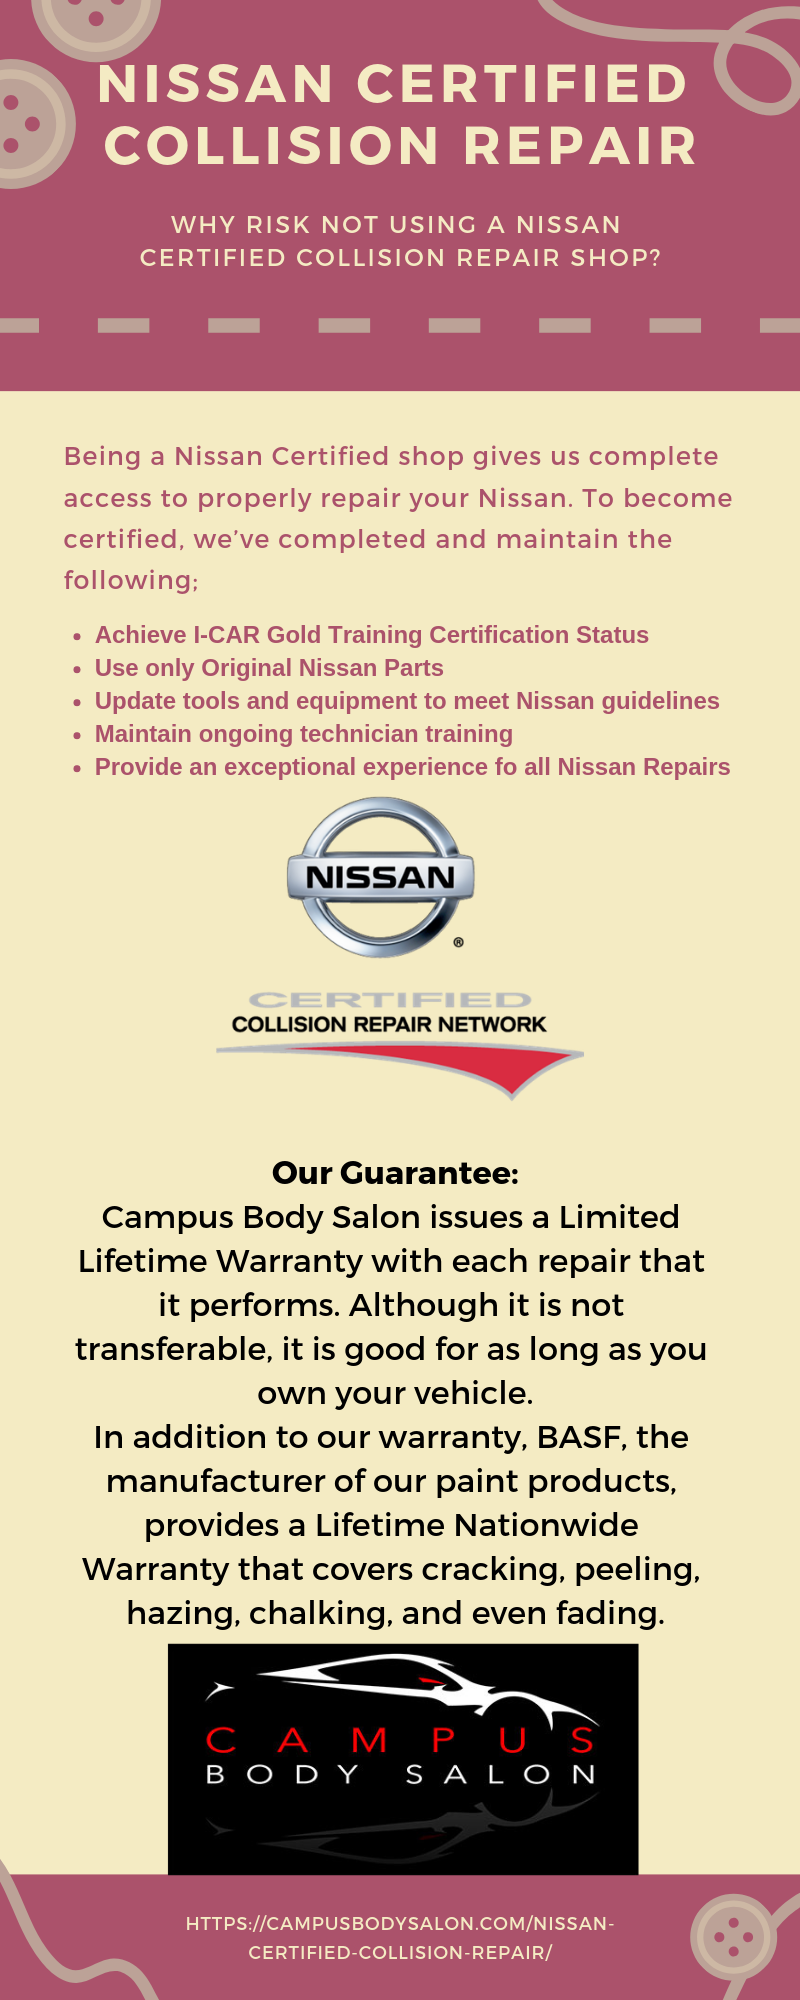 Nissan Certified Collision Repair Collision Repair Collision Repair Shops Repair